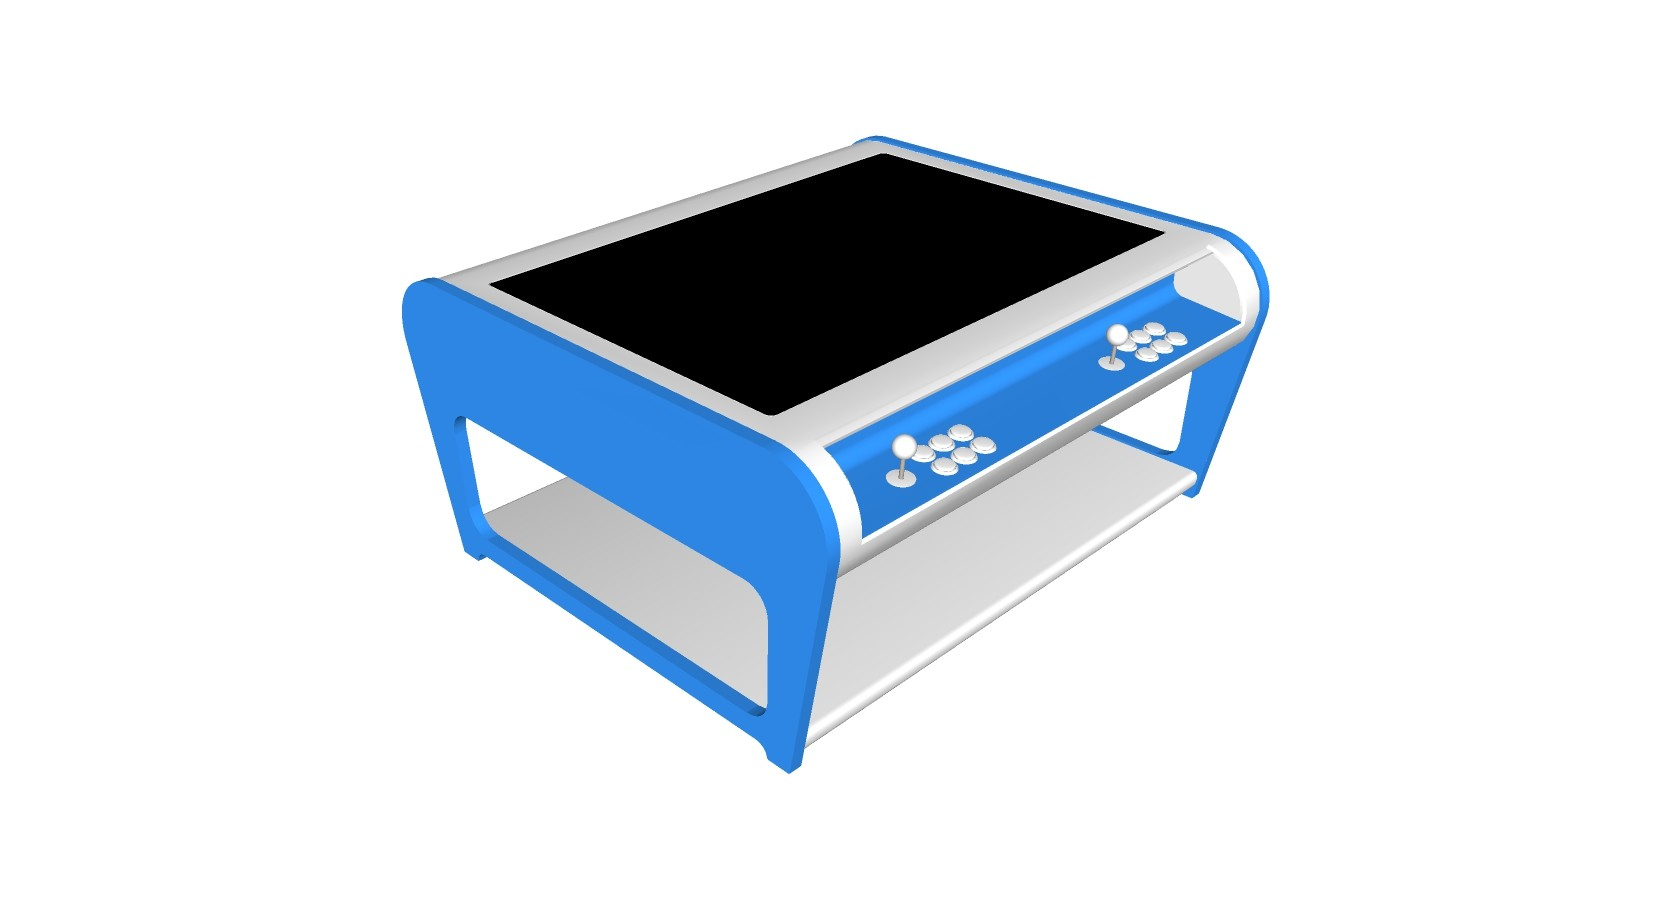 Modern Coffee Table Style Arcade Machine With 960 Plus Games - blue